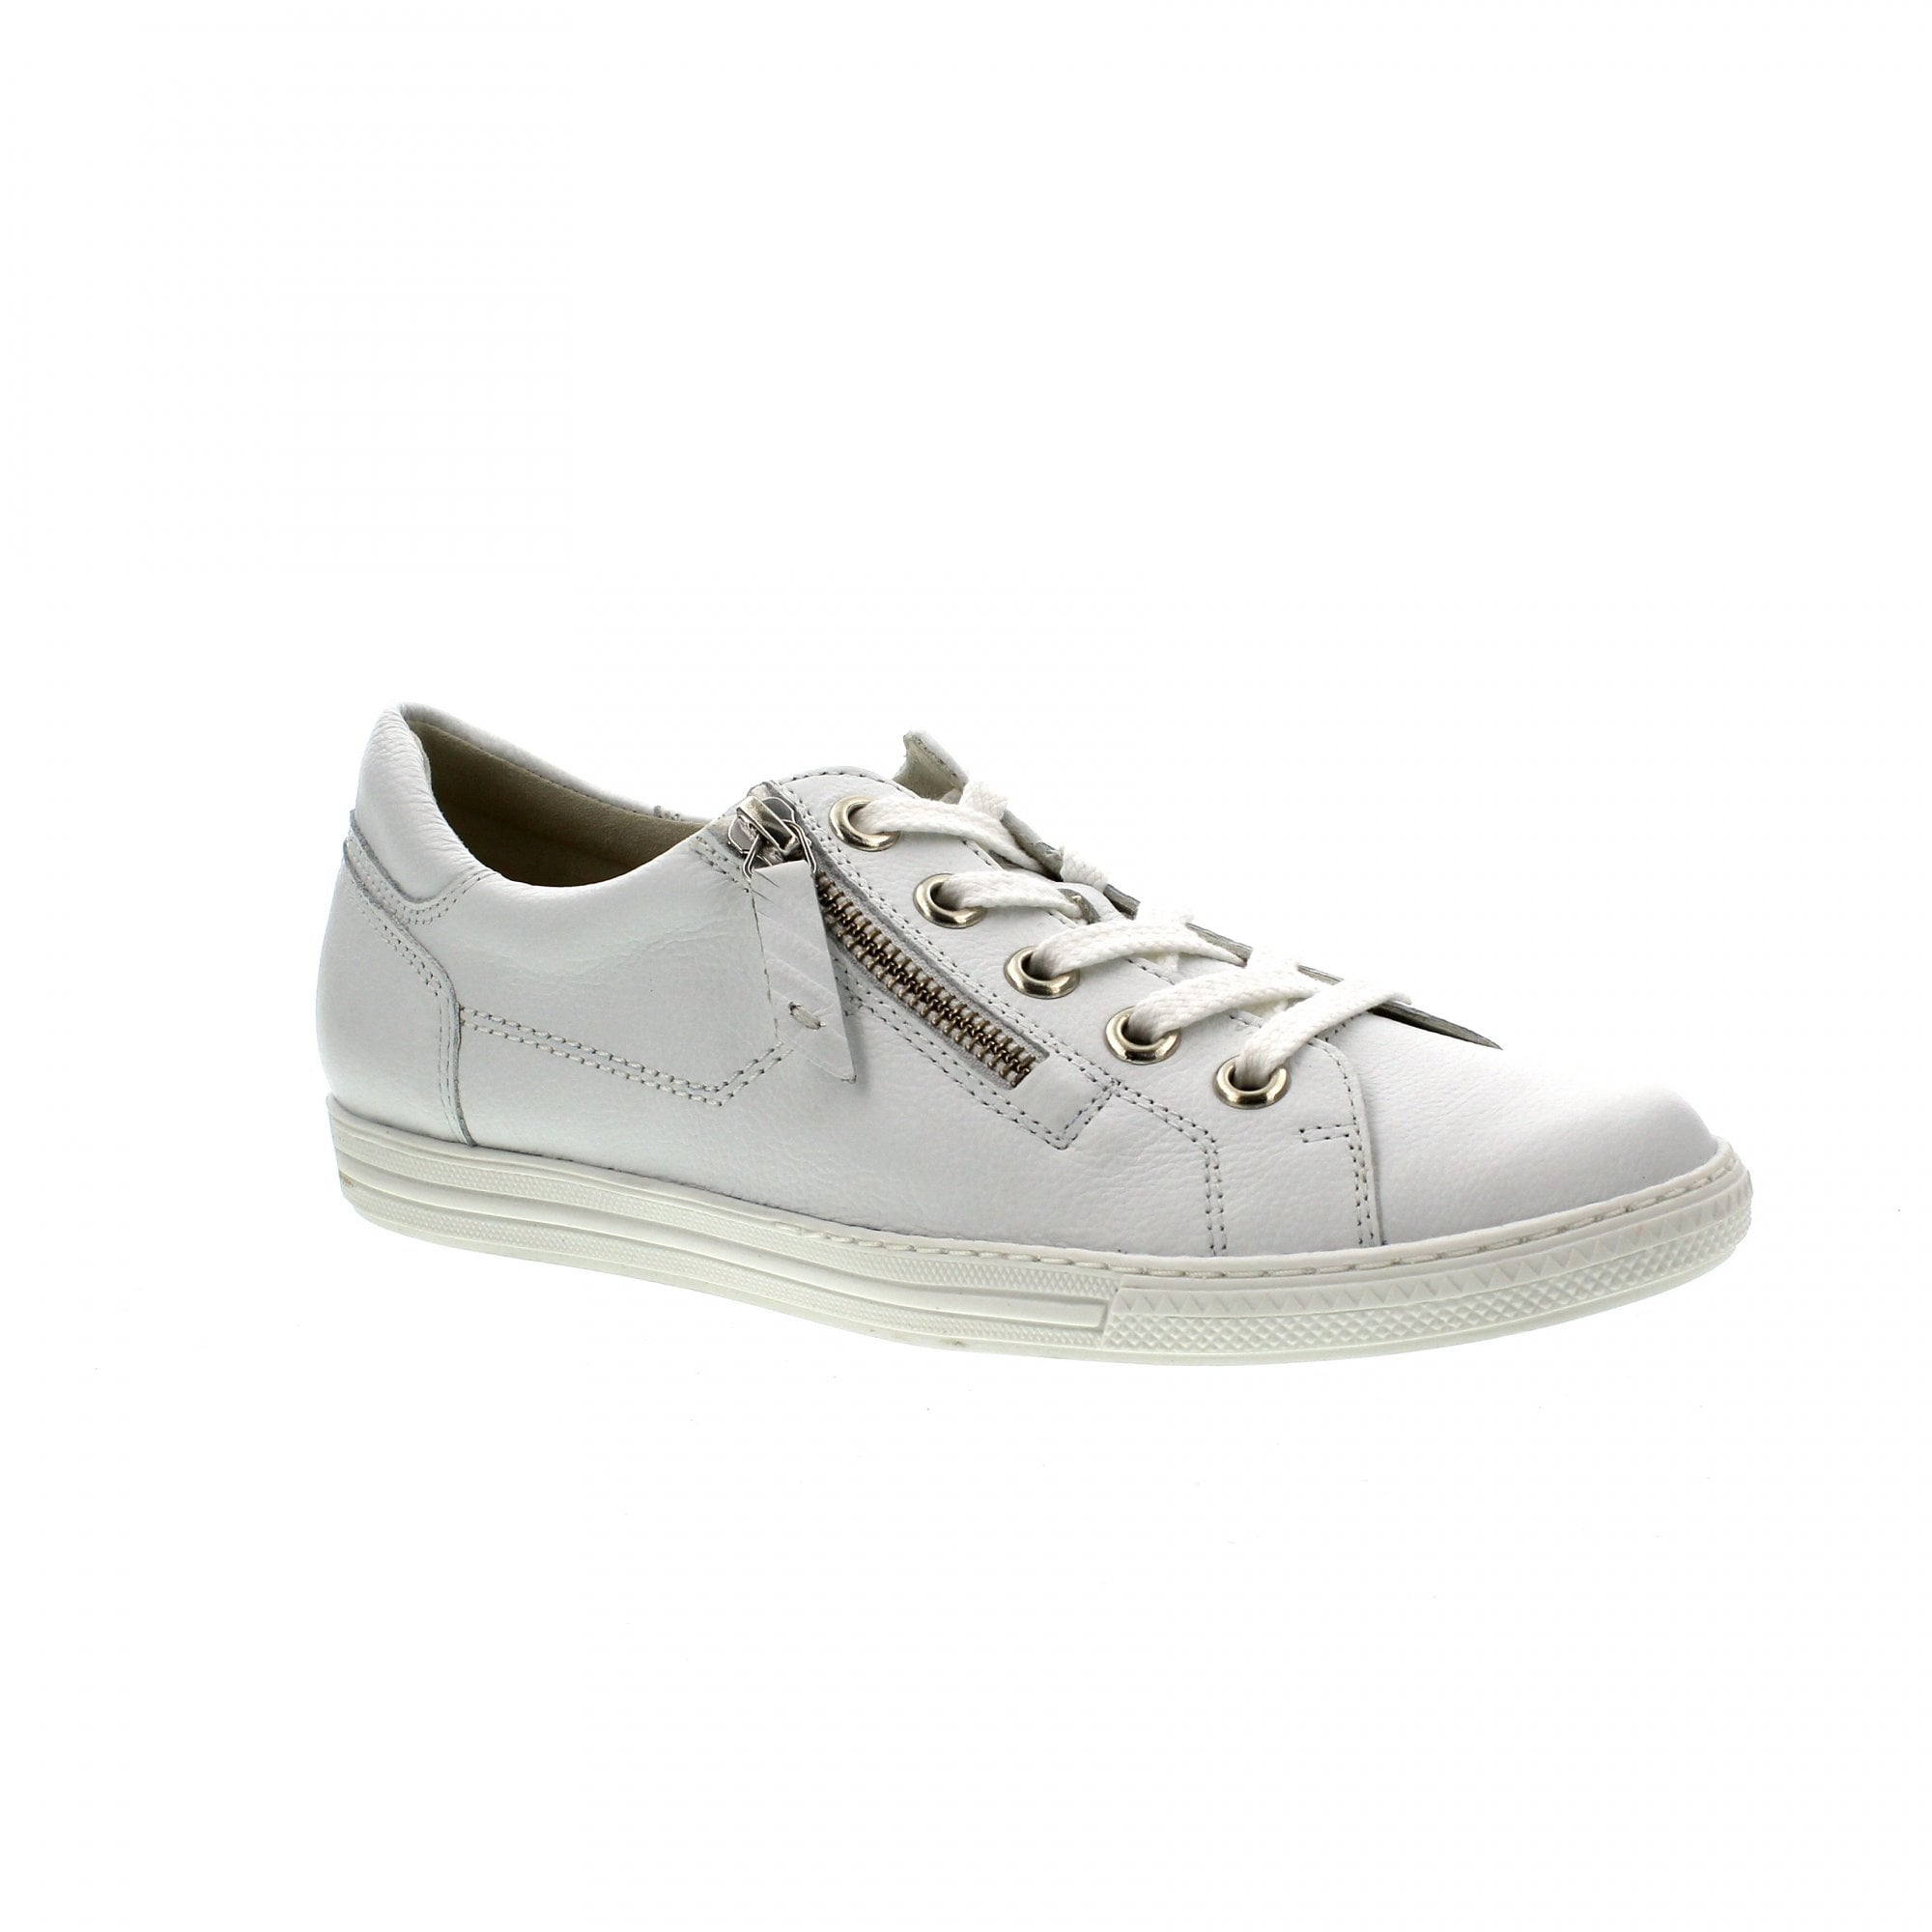 Paul Green 4940-006 White Leather